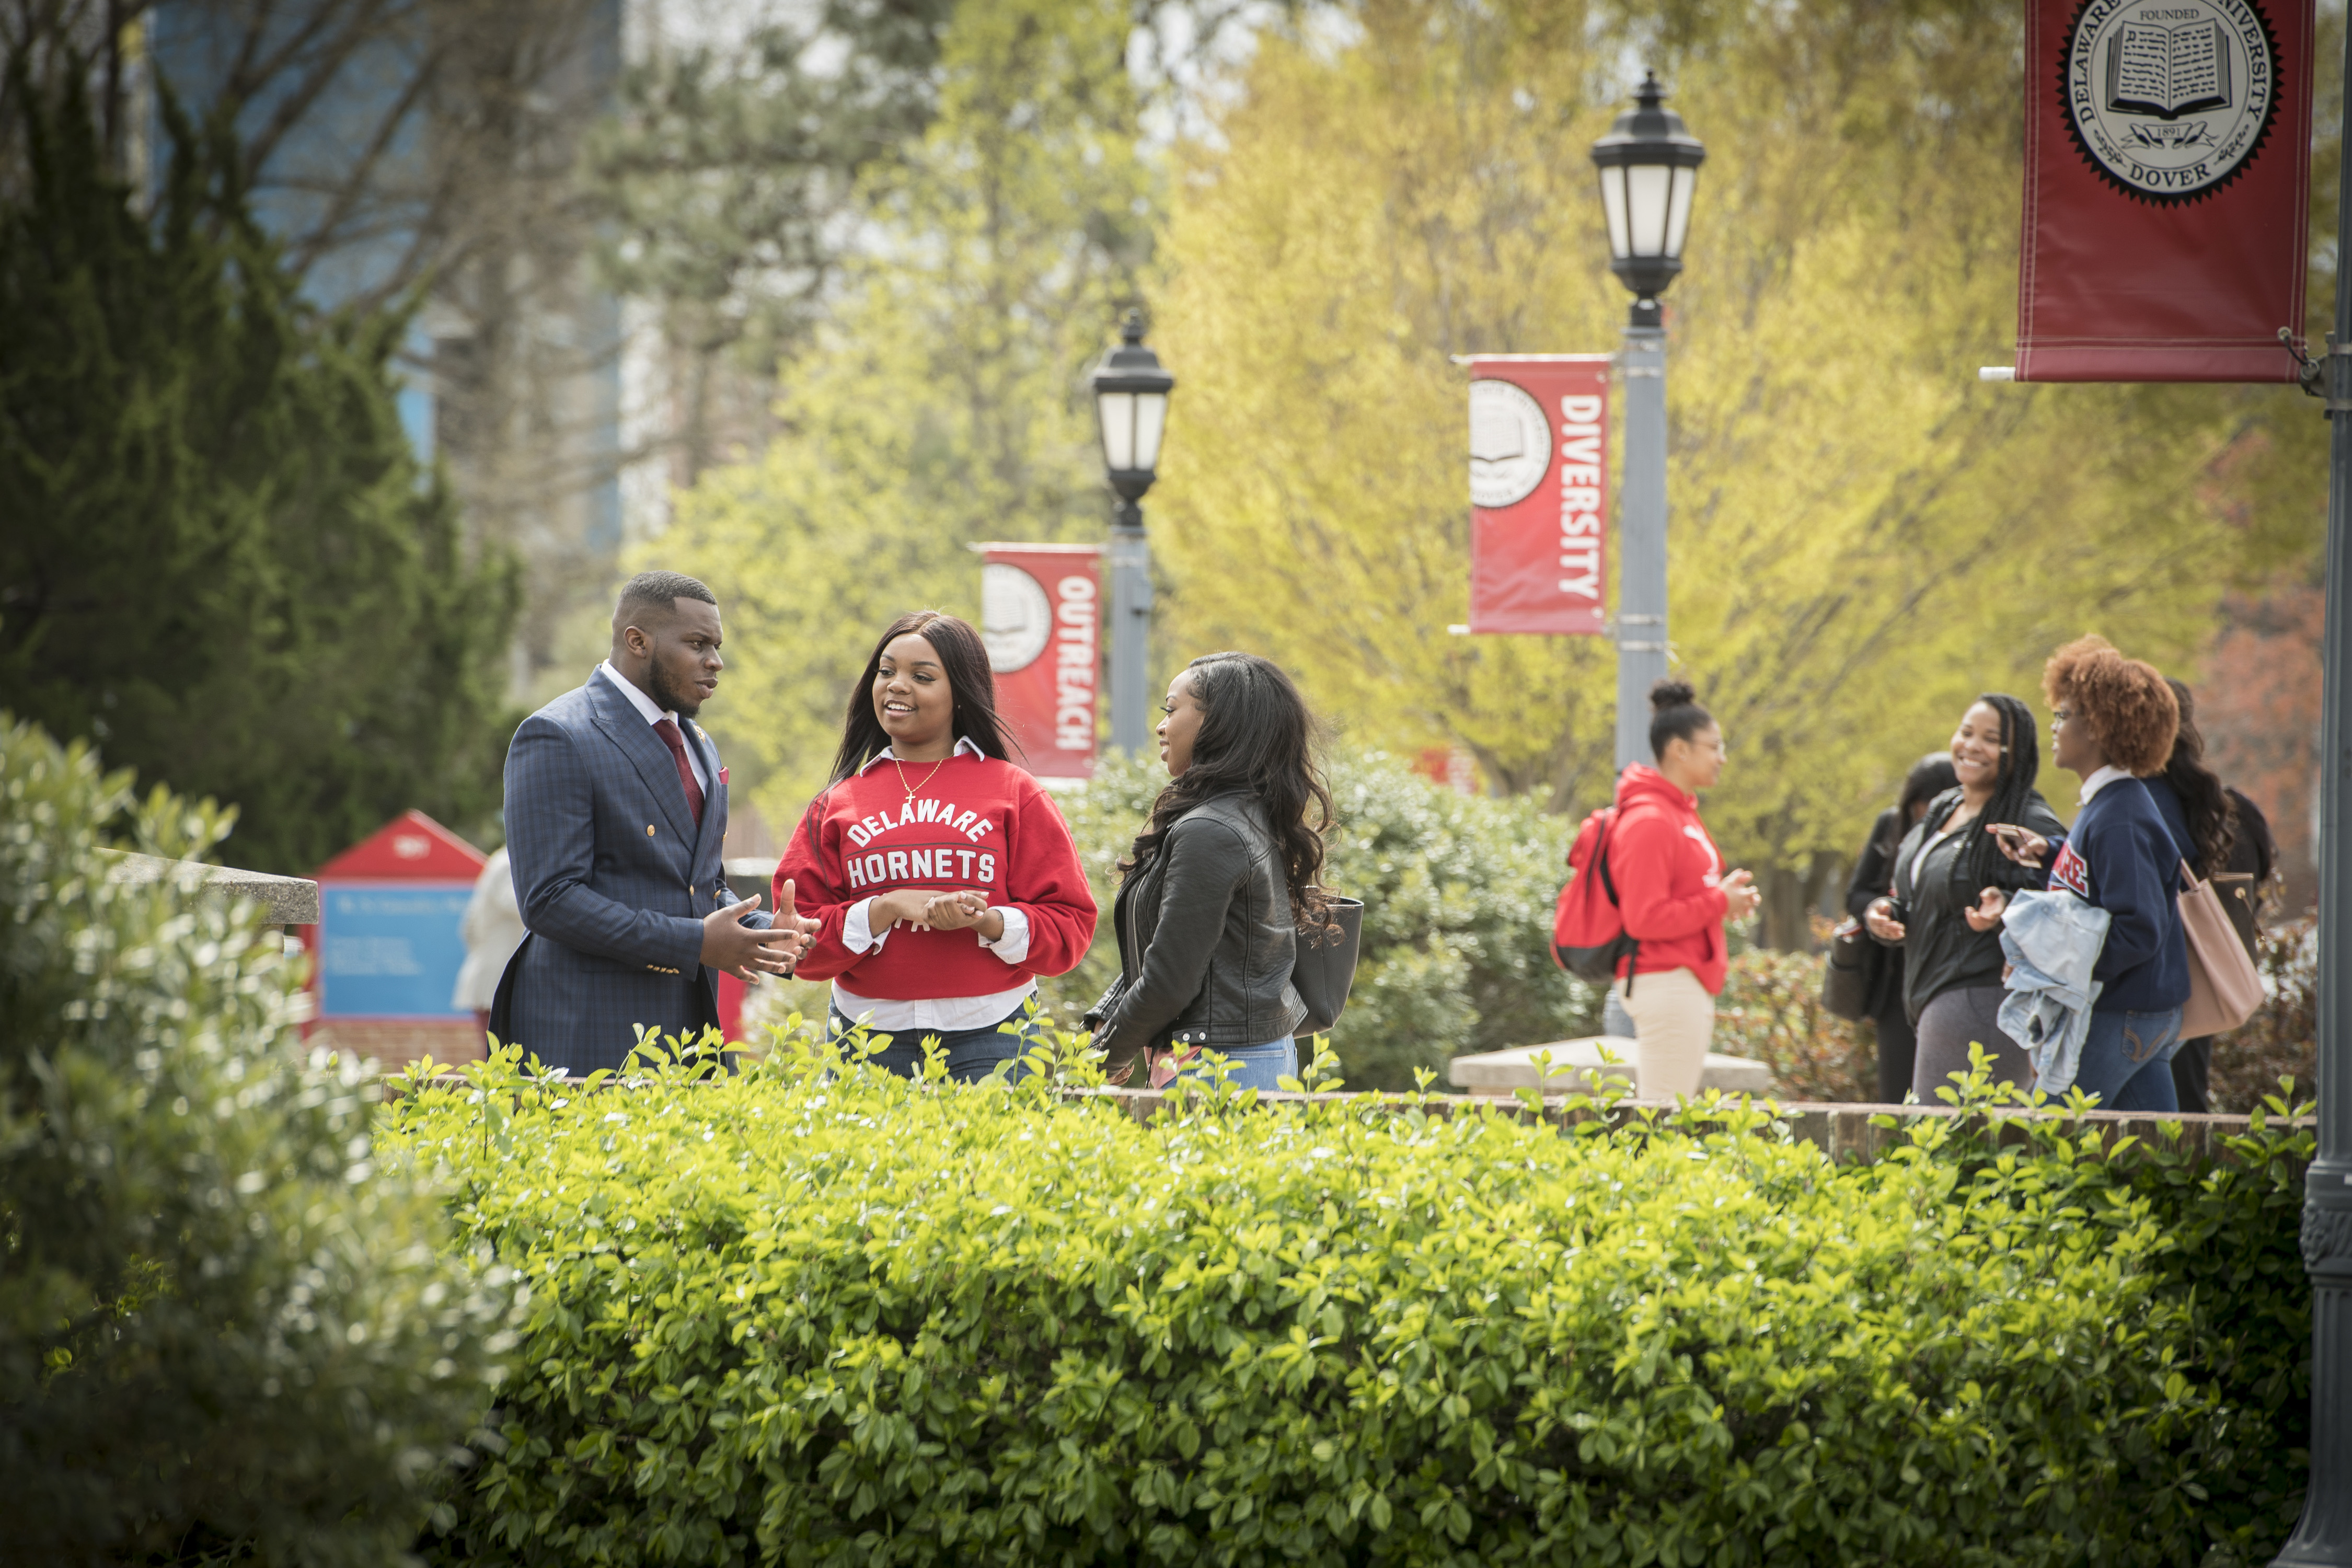 Delaware State University has maintained its position among public HBCUs (#4) and  among all 102 HBCUs  is #13 in the annual HBCU rankings published by the U.S. News & World Report this week.